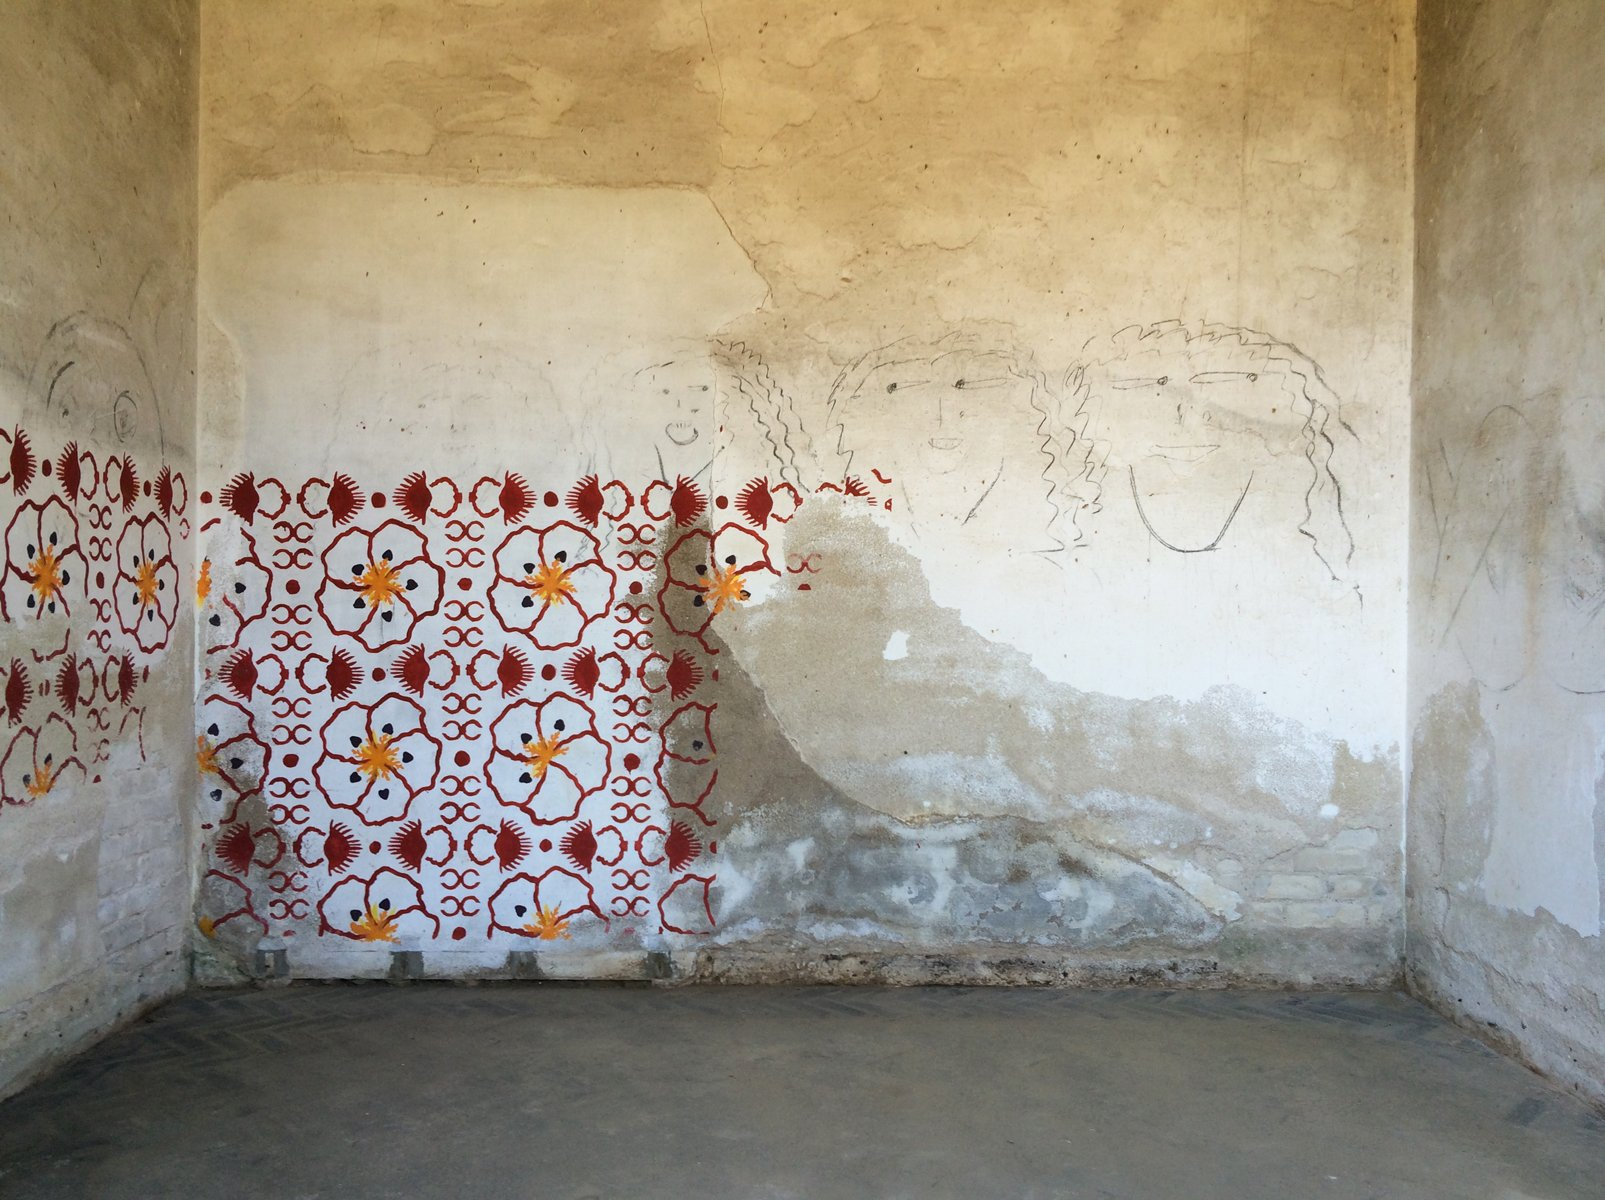 An empty rustic whitewashed room with a floral mural and charcoal-drawn faces.